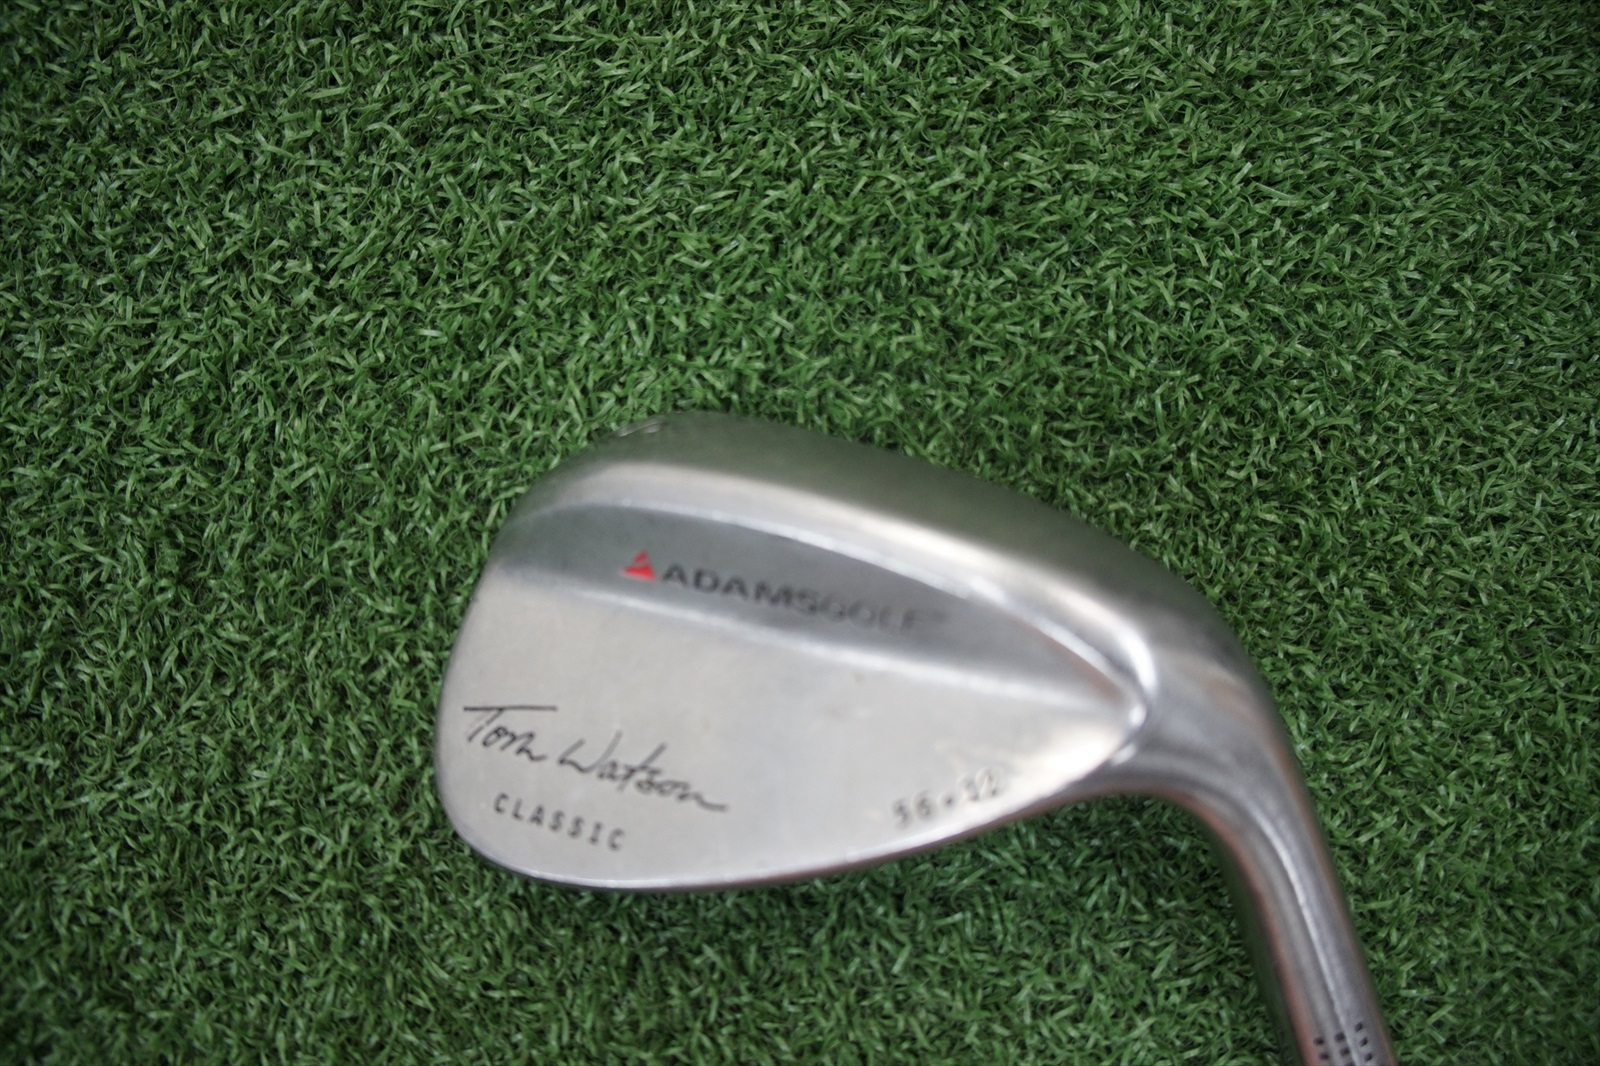 adams golf tom watson wedge review